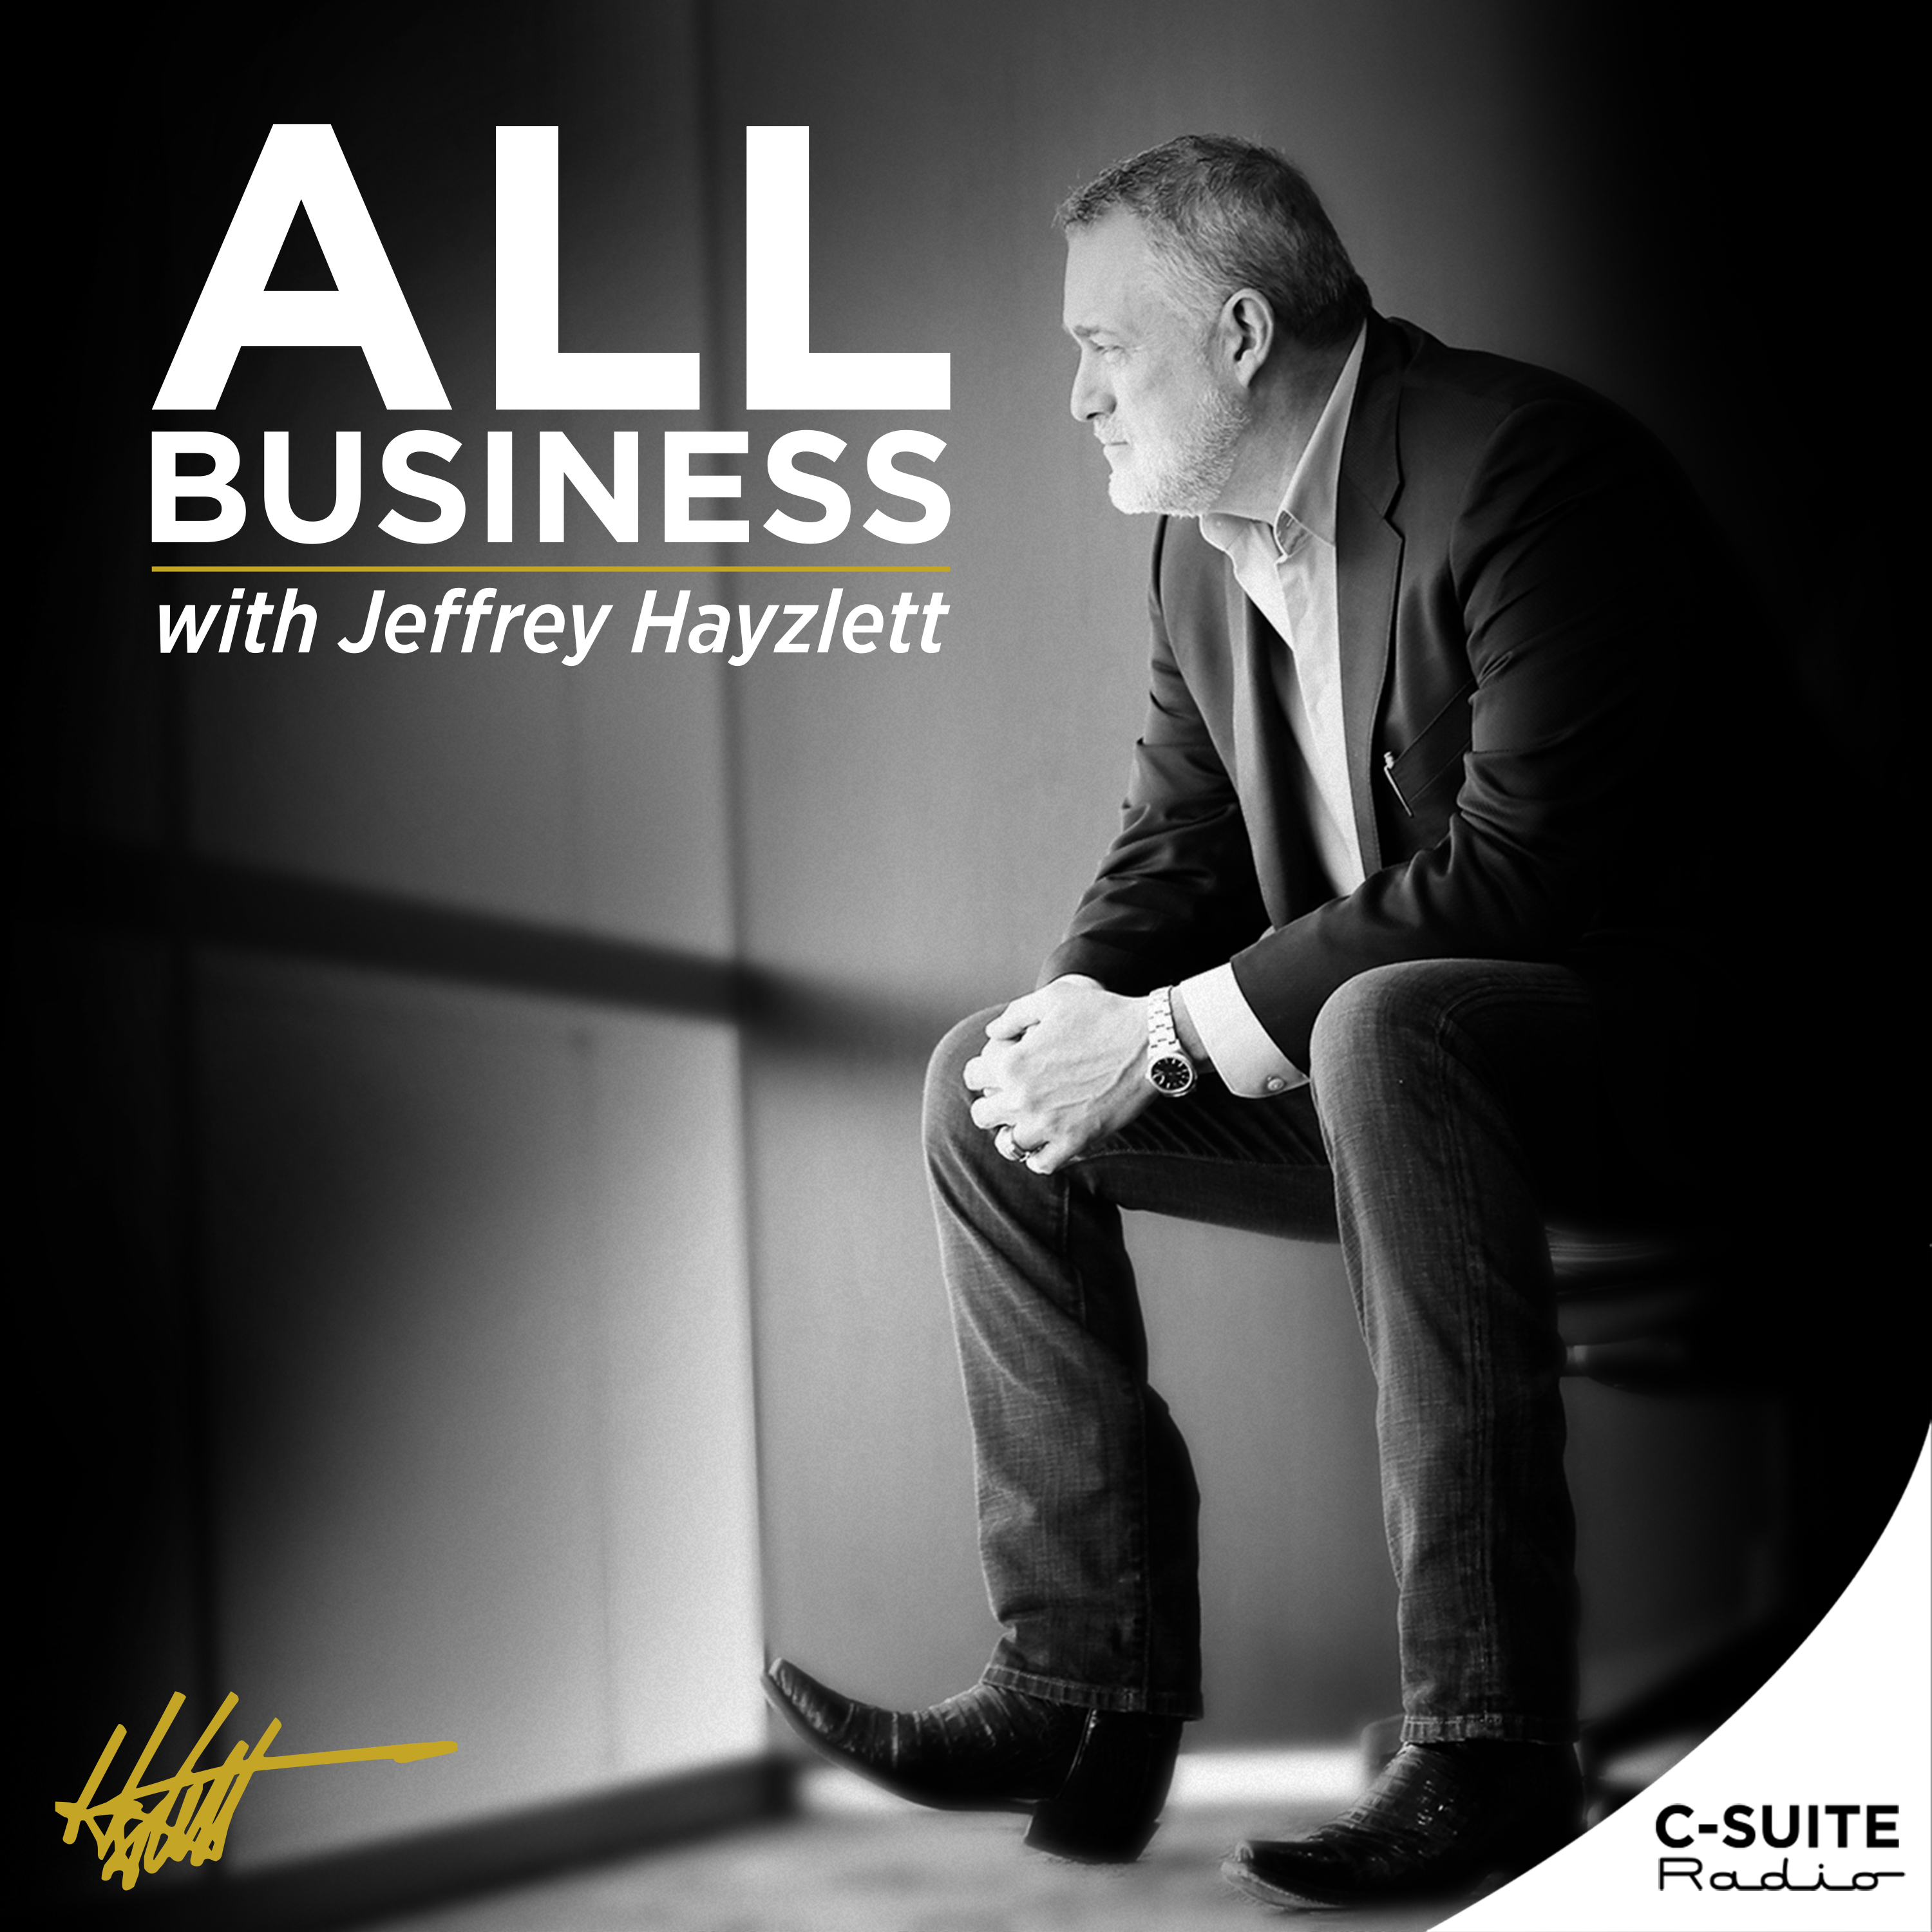 All Business With Jeffrey Hayzlett